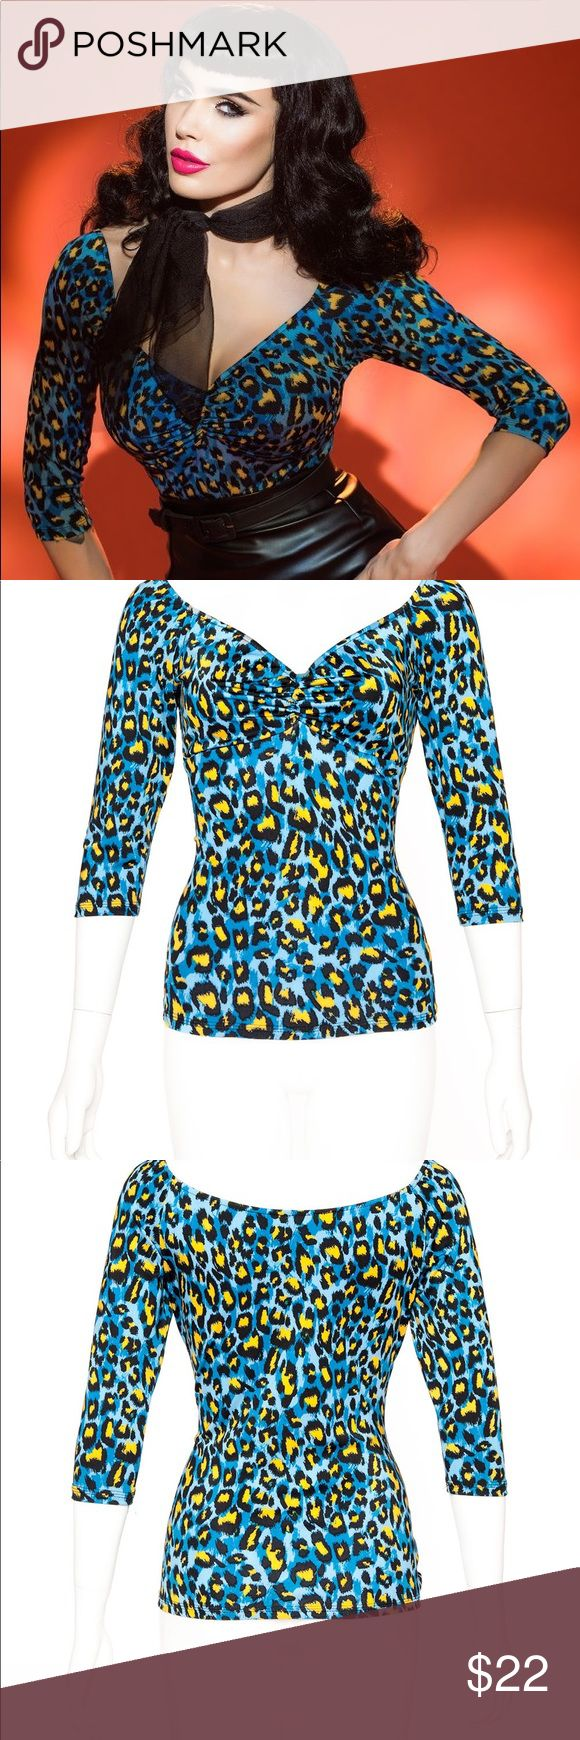 Pinup Girl Clothing Jailbird Top Blue Leopard This listing is for the rare--out of stock--jailbird top in blue 80s print from Pinup Girl Clothing. It is brand new without tags--never worn! Size xs, but has lots of stretch and can fit a small as well! Pinup girl clothing Tops